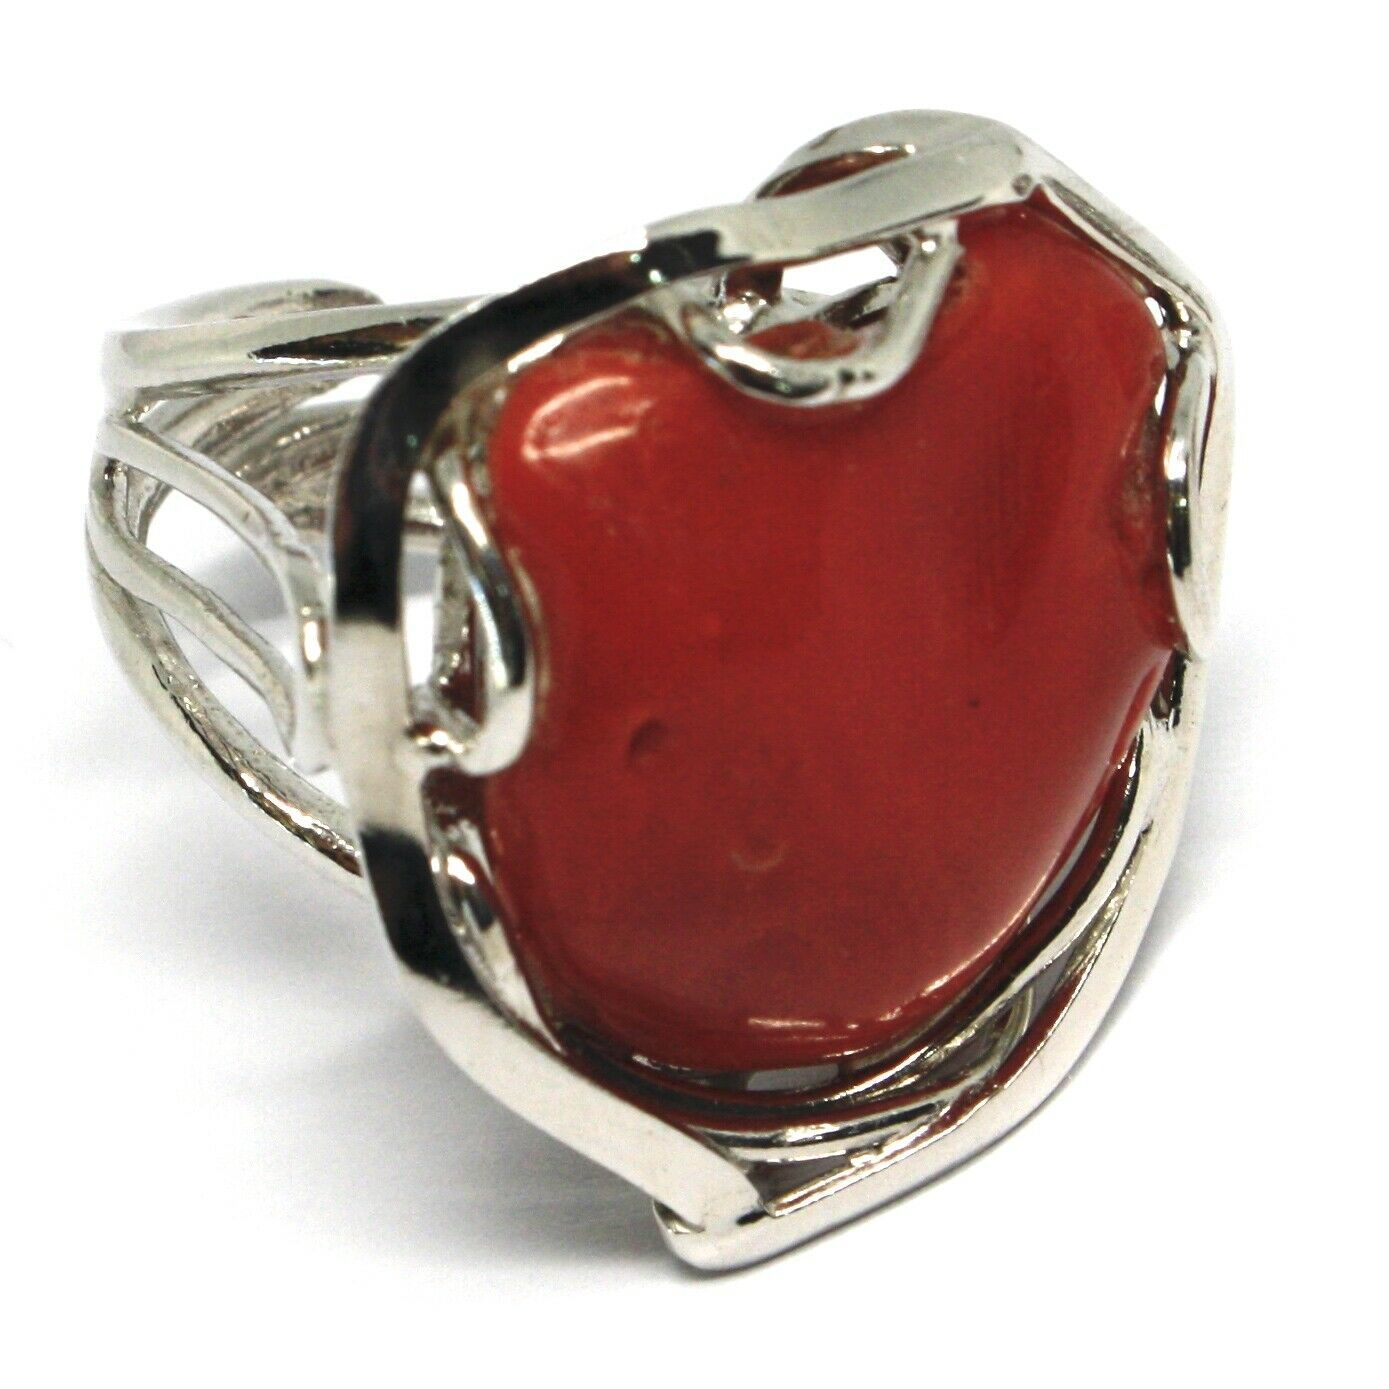 ANNEAU EN ARGENT 925, CORAIL ROUGE NATUREL SWEETHEART, CABOCHON, MADE IN ITALY